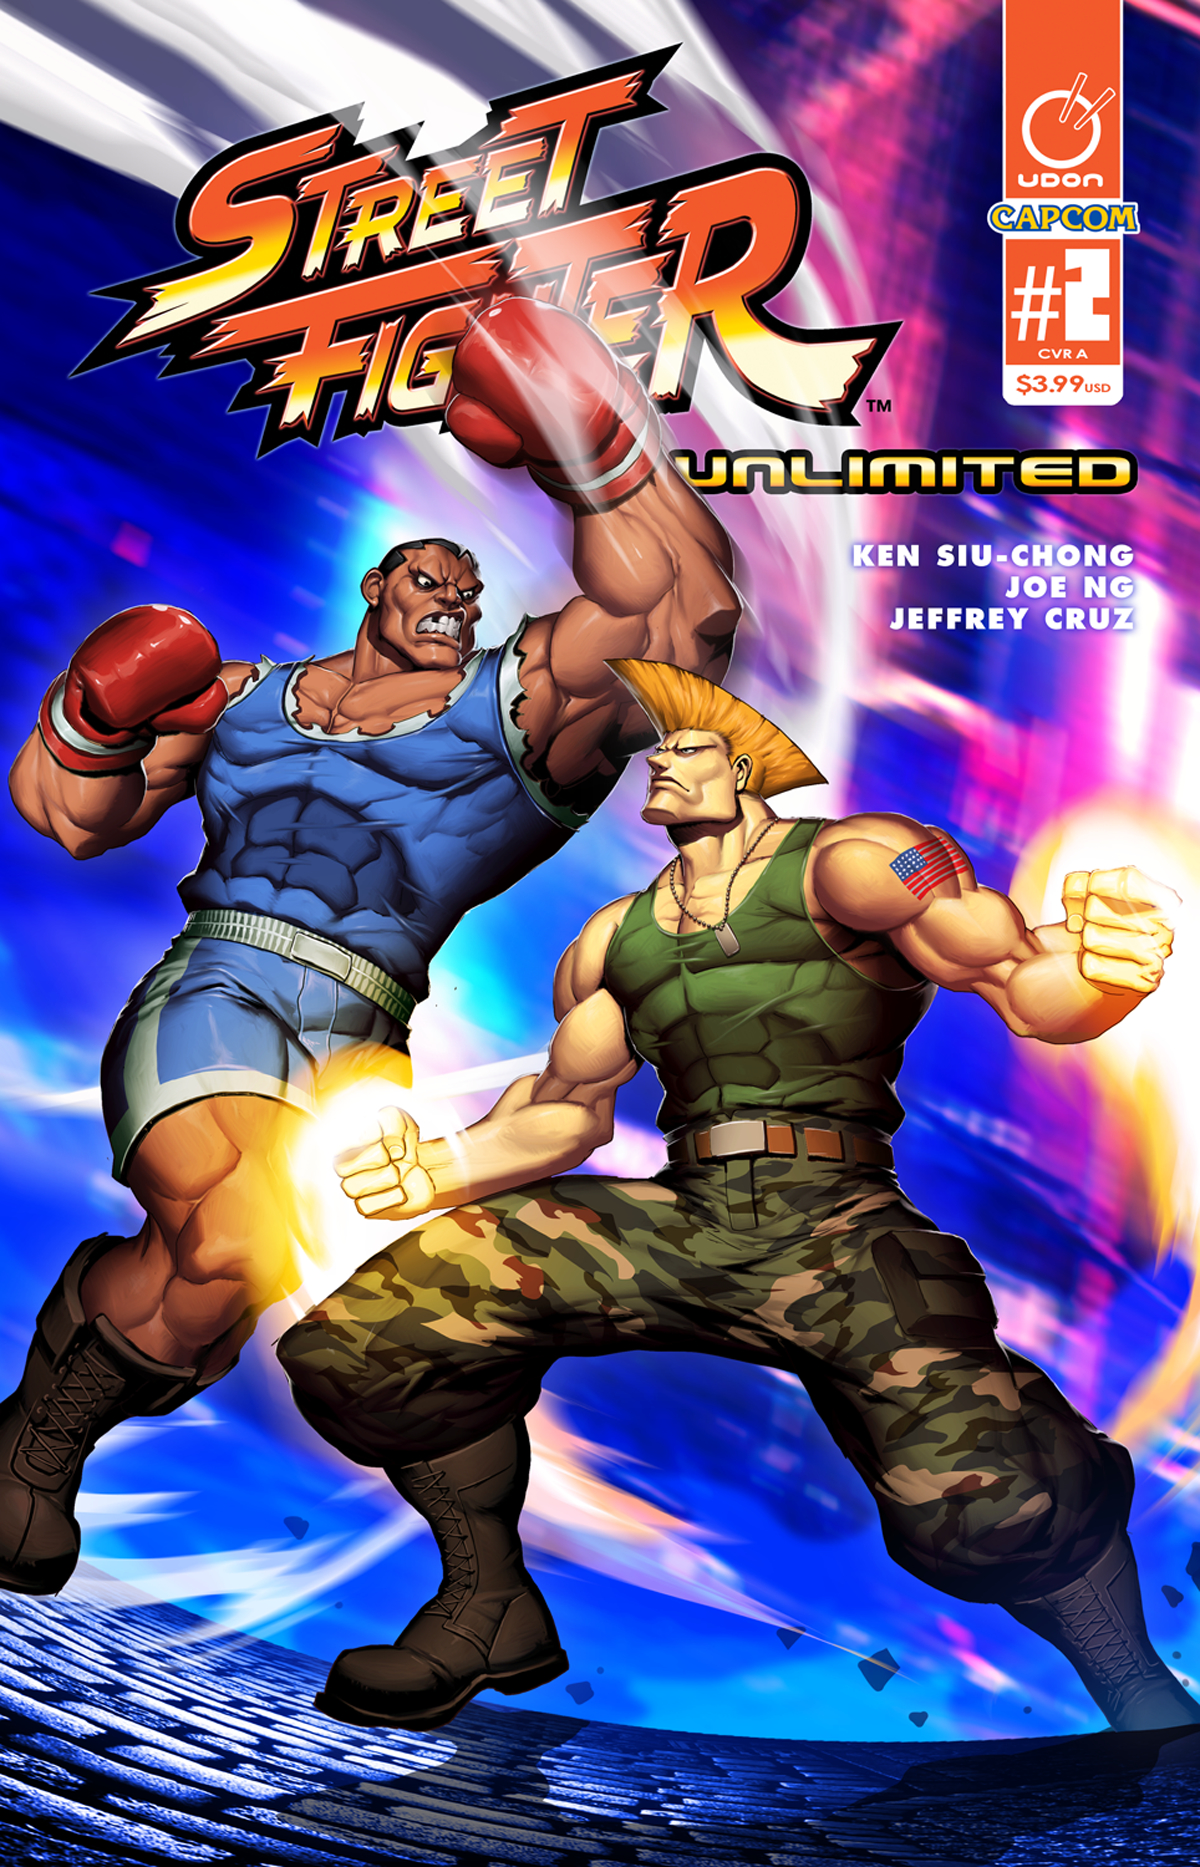 STREET FIGHTER UNLIMITED #2 CVR A GENZOMAN STORY